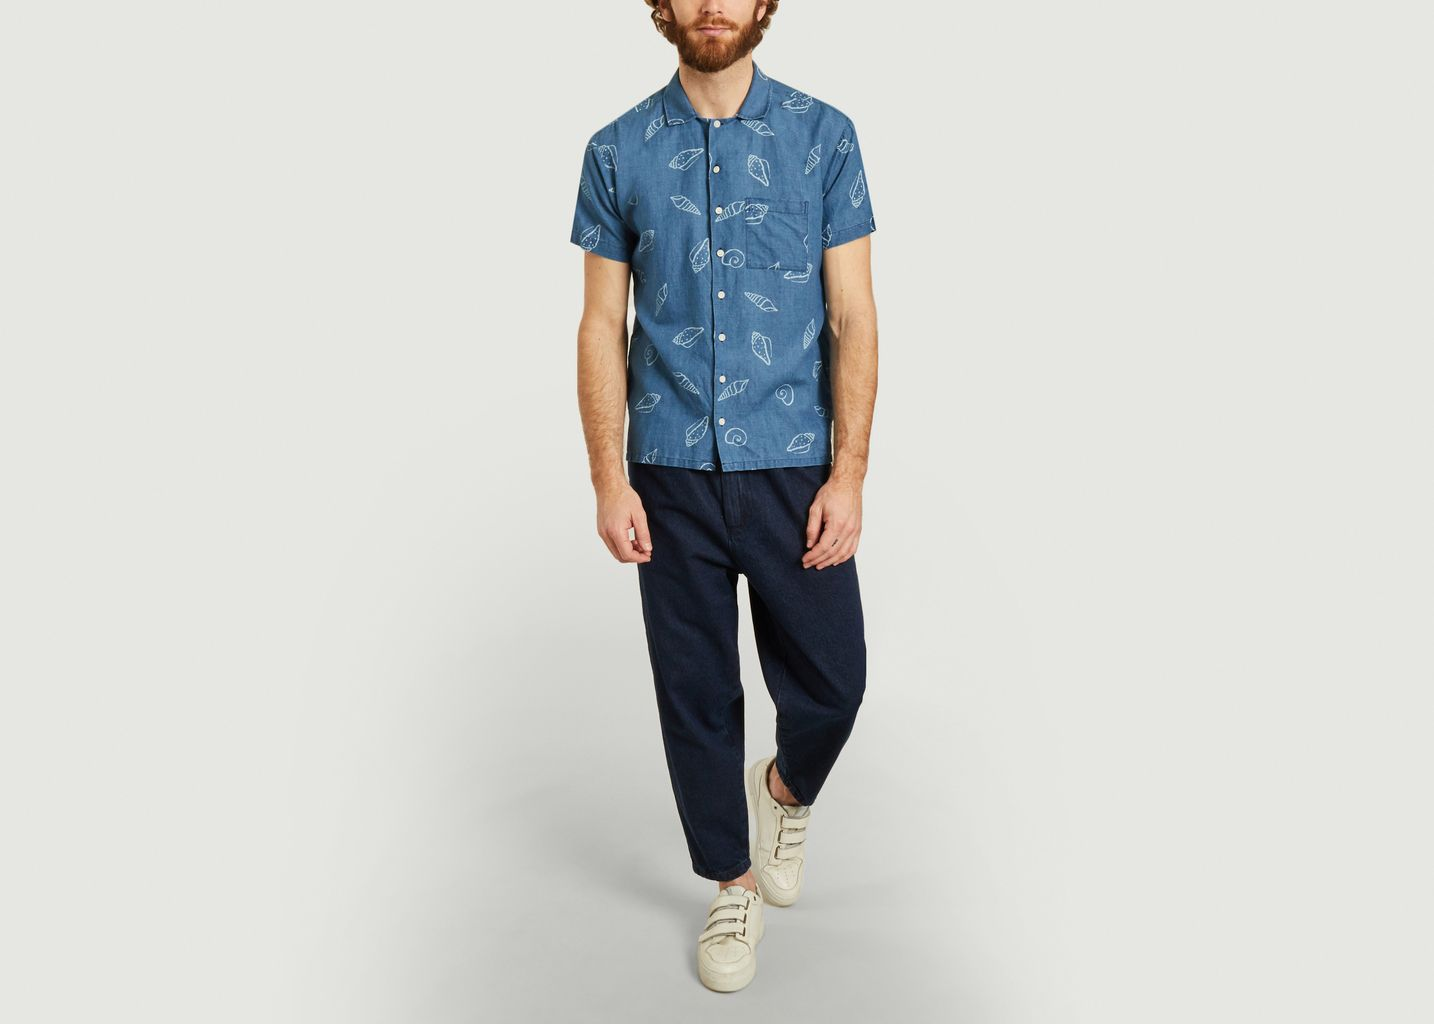 Chemise Coquillage - Olow